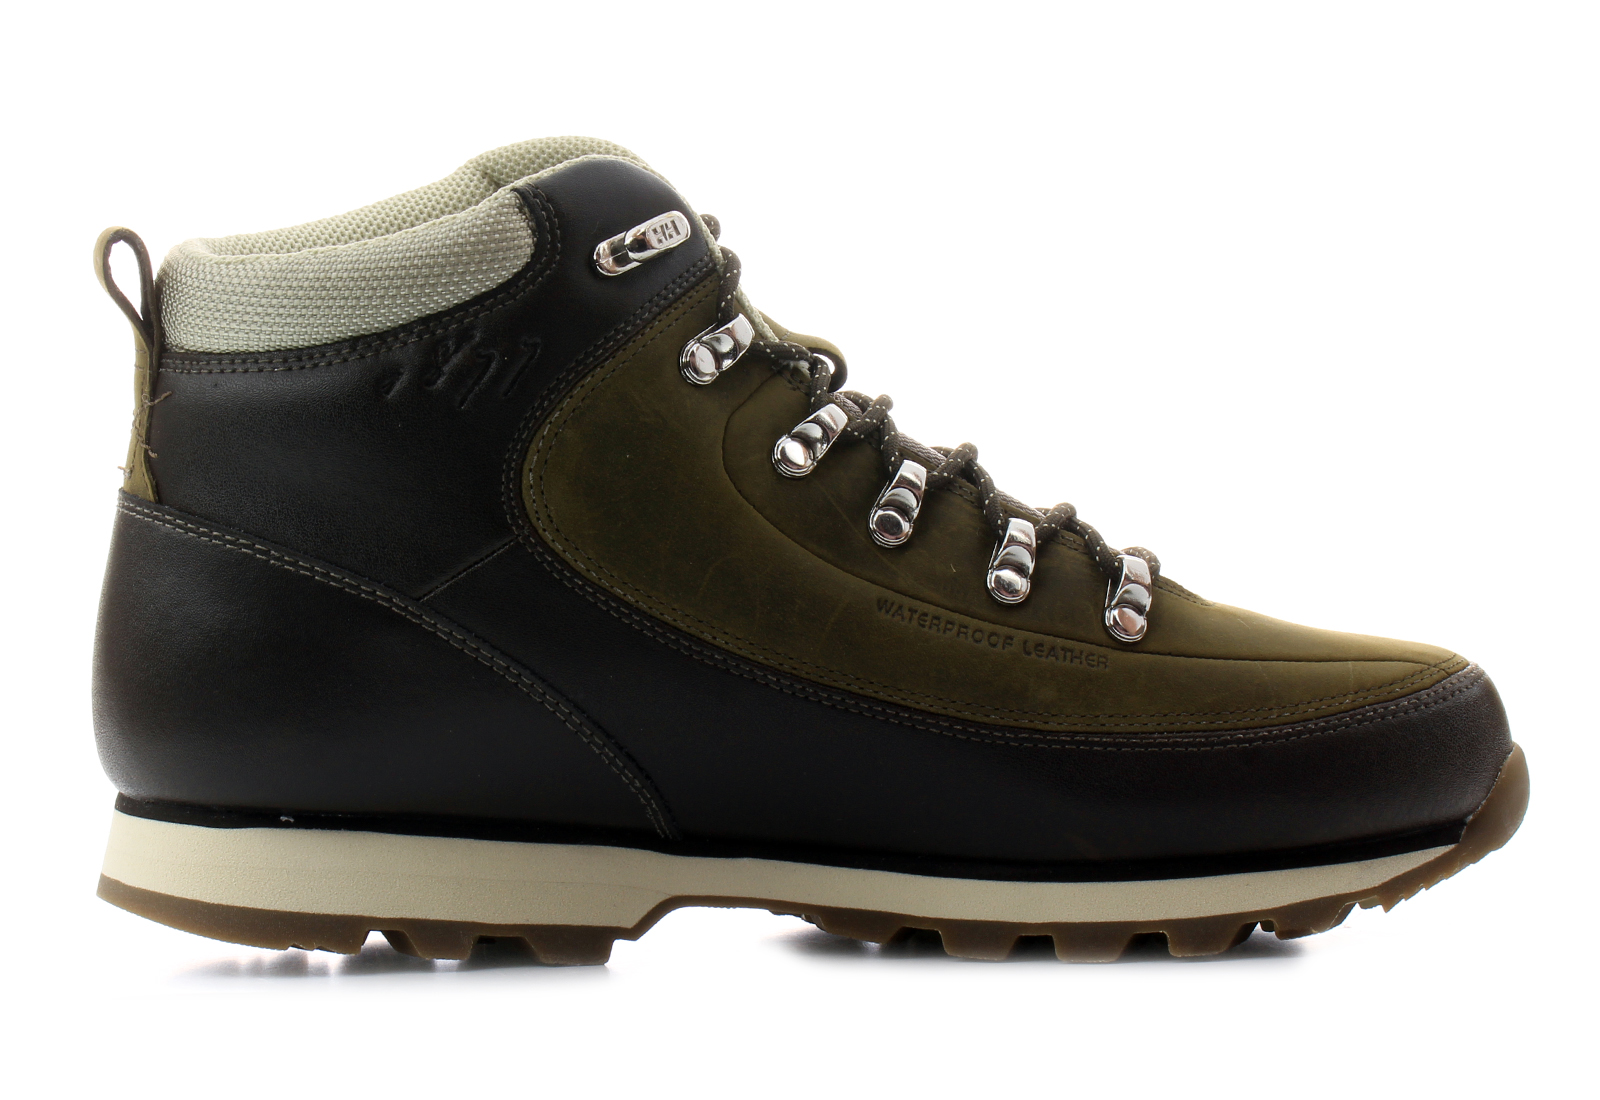 fb4a79afde Helly Hansen Bakancs - W The Forester - 10516-708 - Office Shoes ...